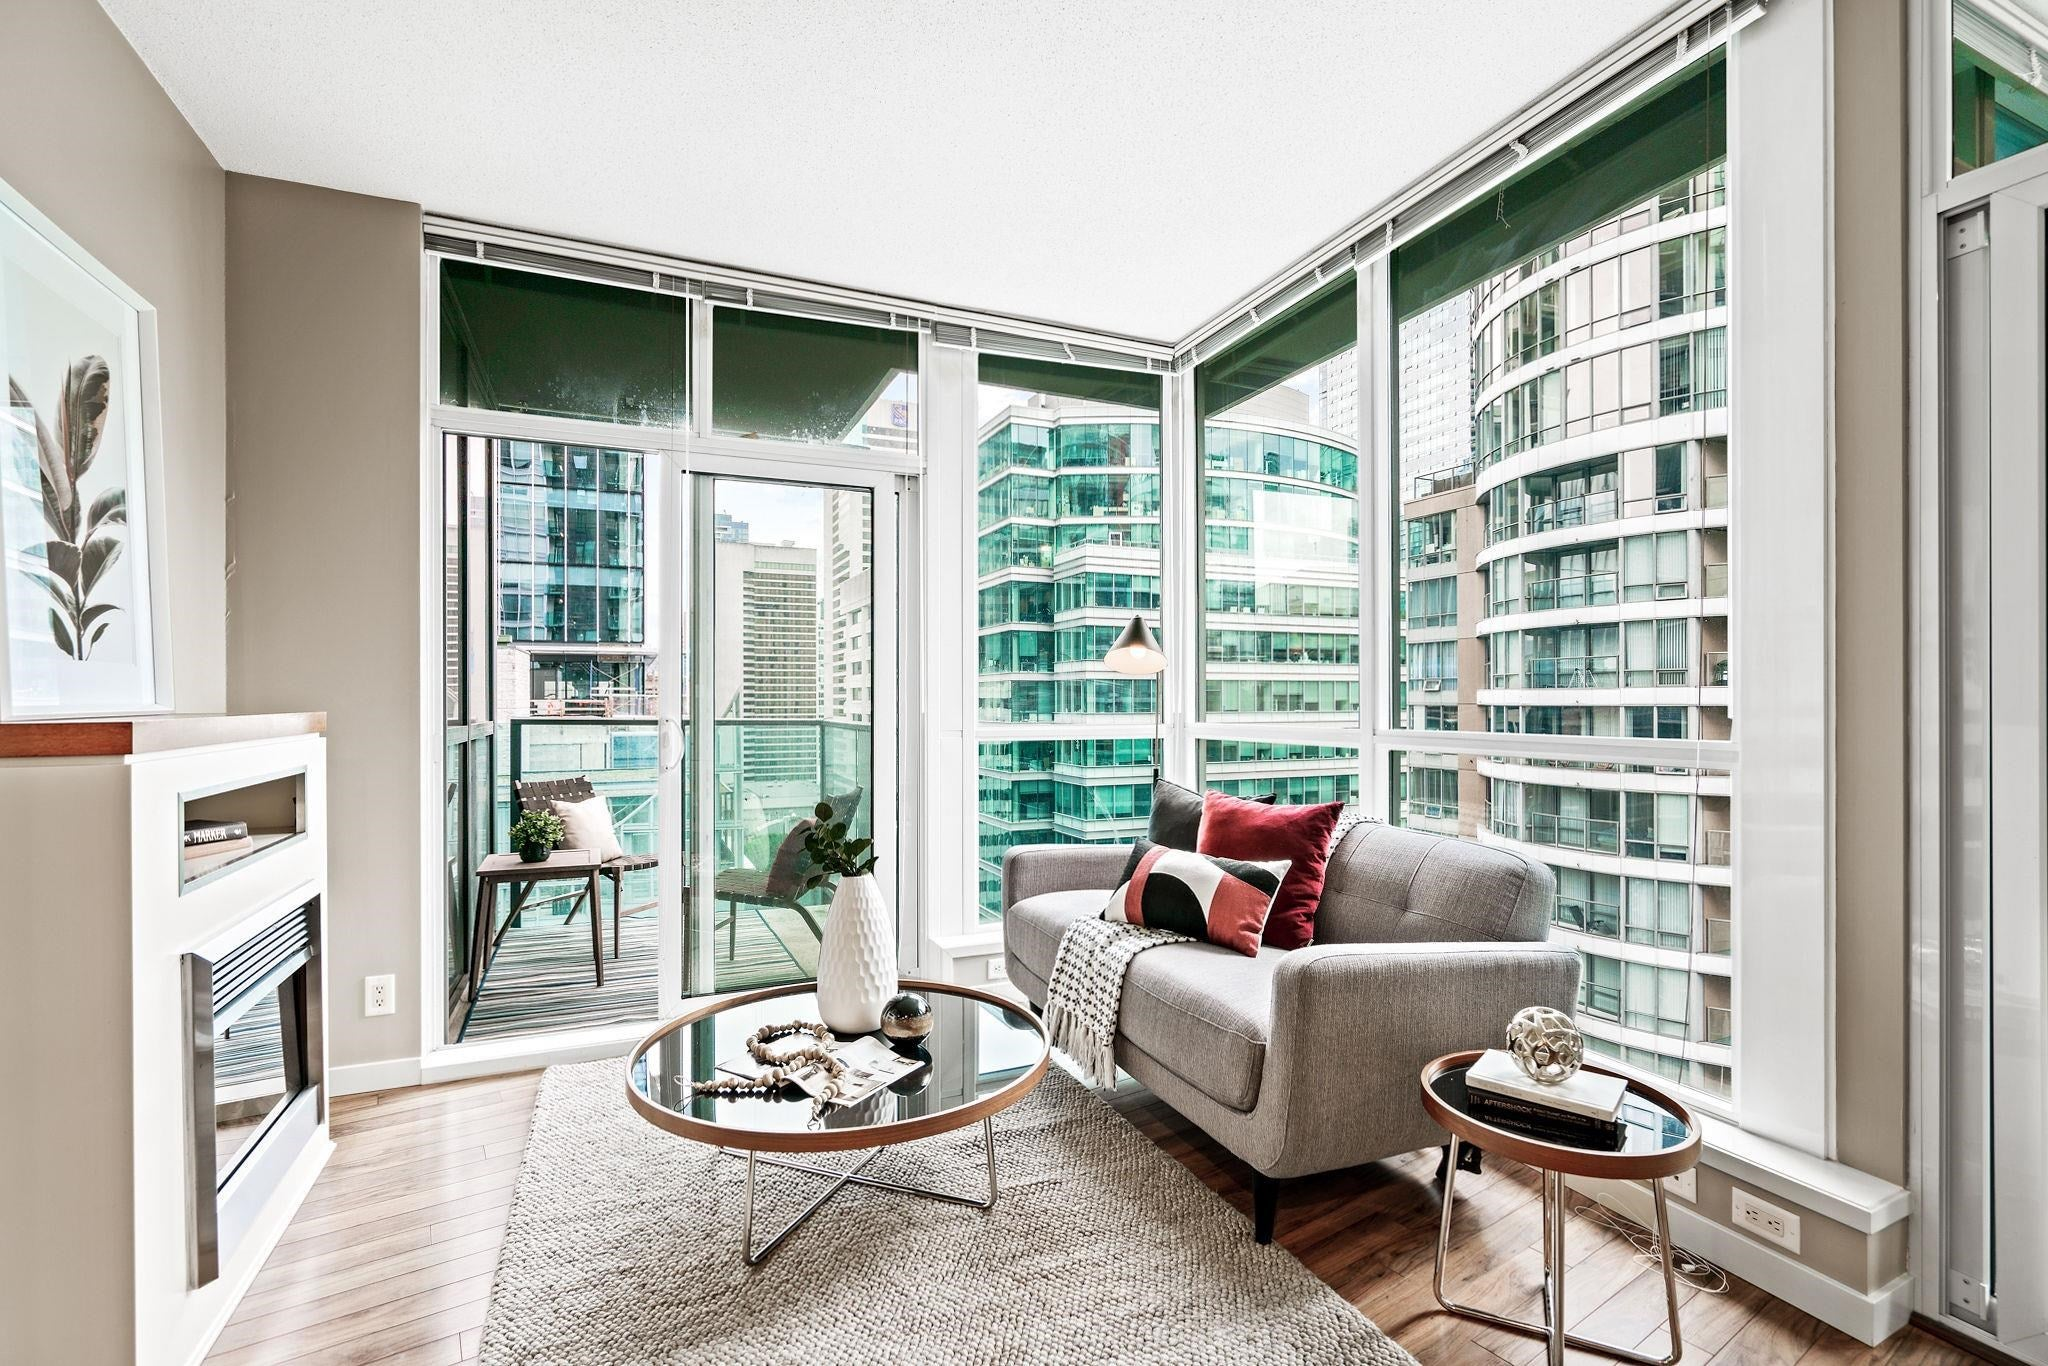 2105 1189 MELVILLE STREET - Coal Harbour Apartment/Condo for sale, 1 Bedroom (R2615541) - #1